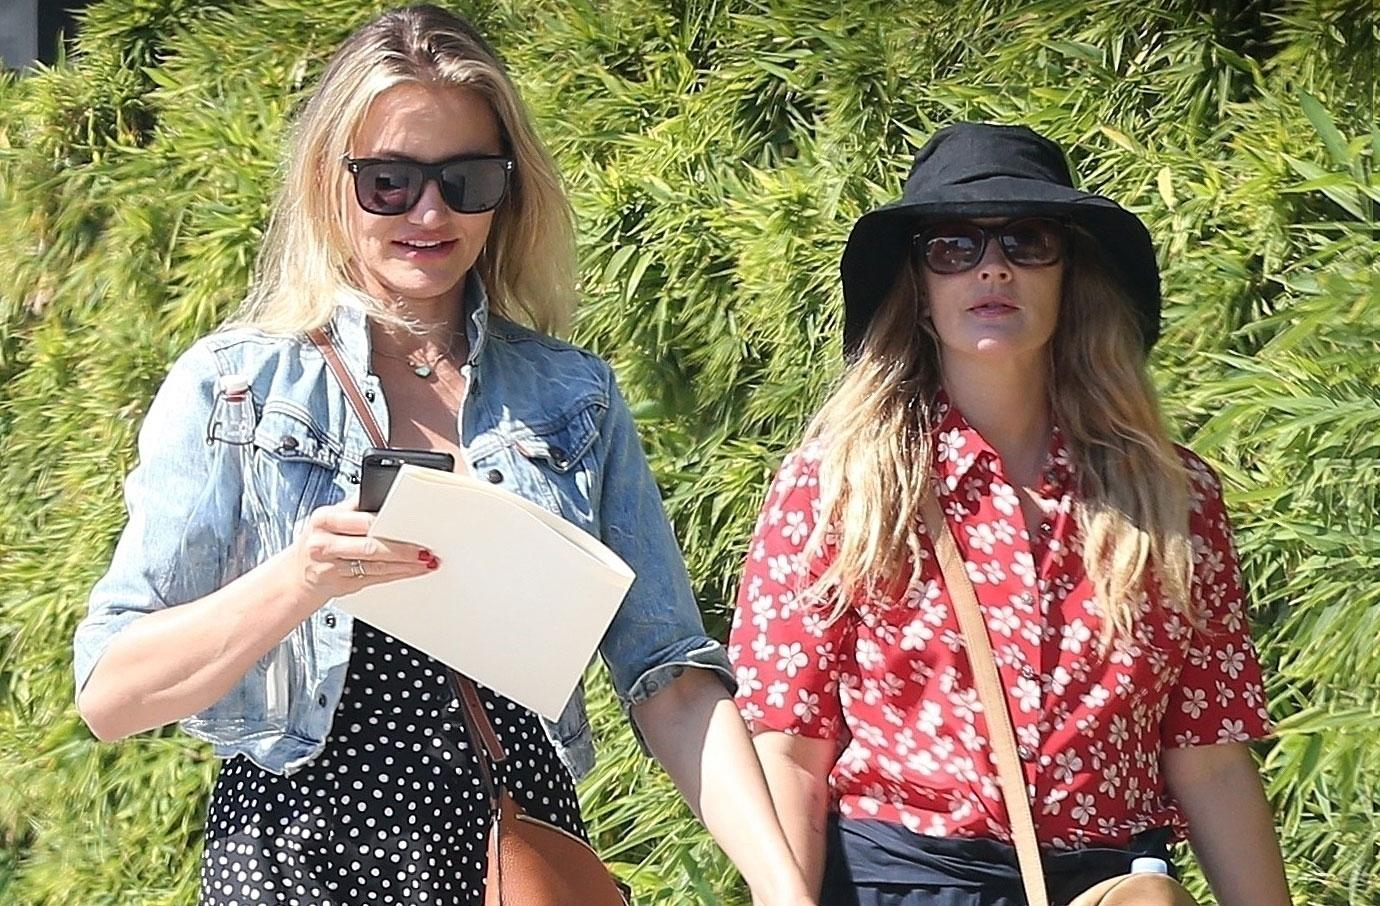 Cameron Diaz and Drew Barrymore Get Together